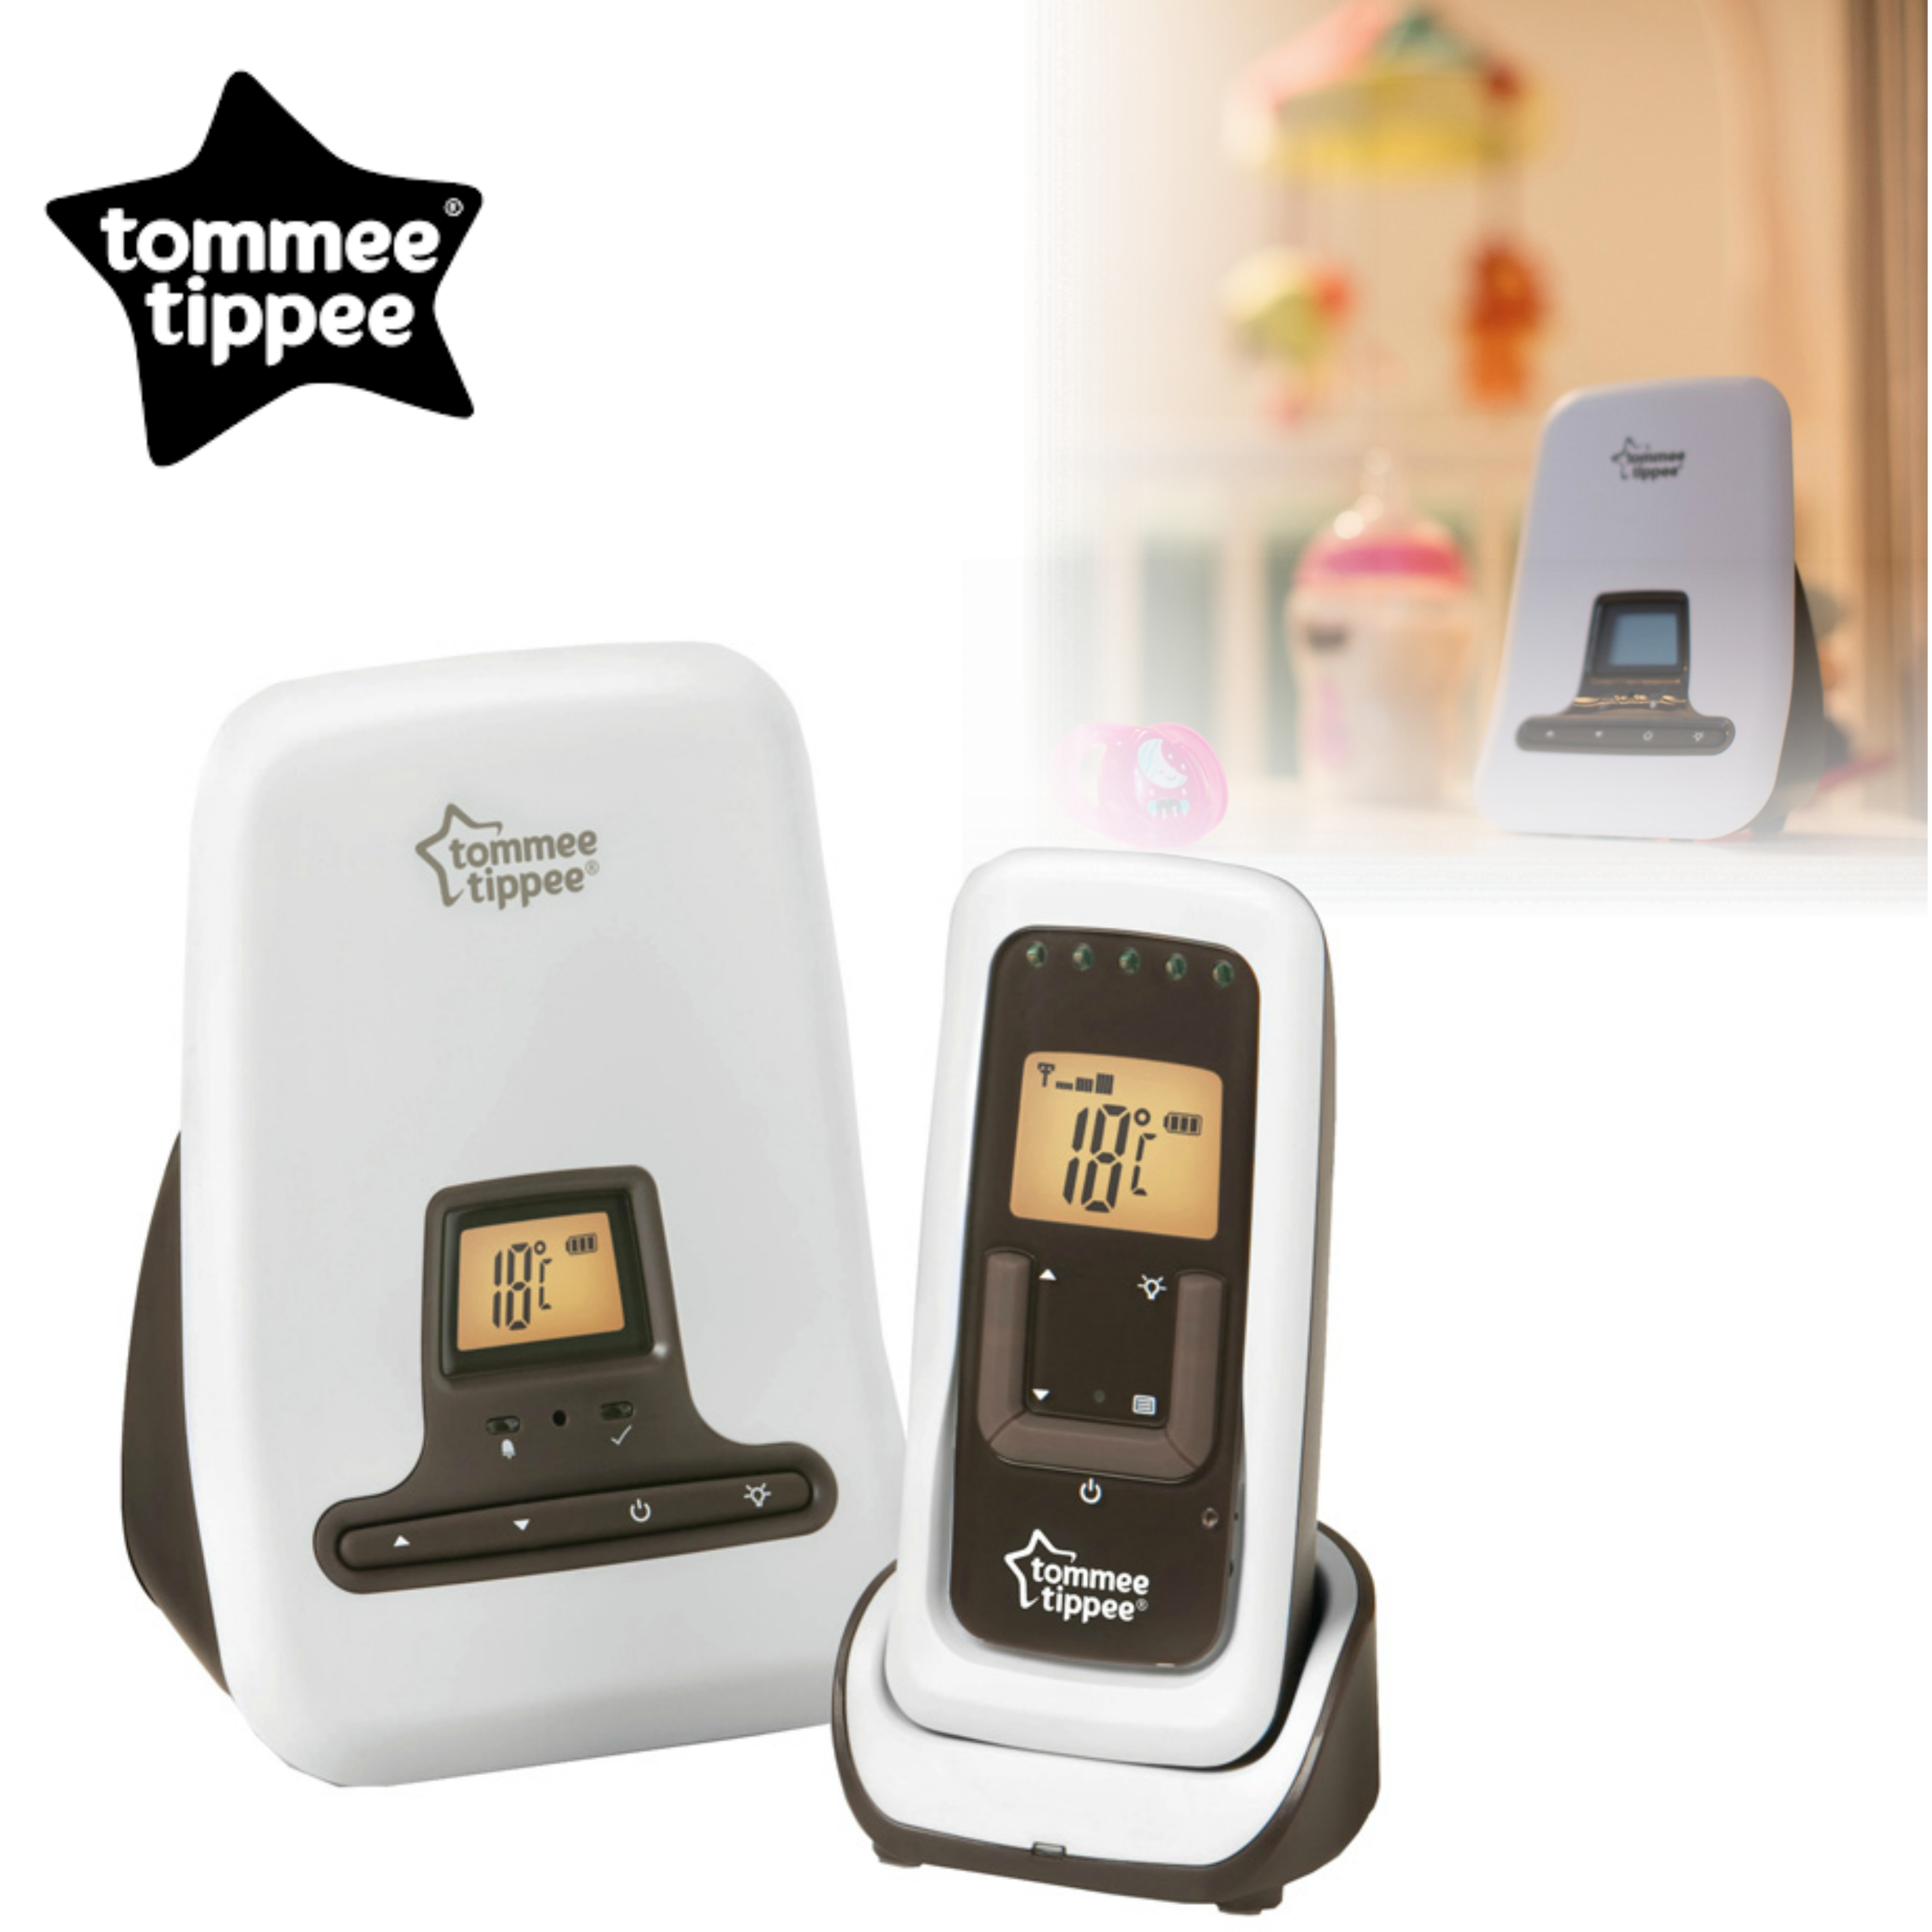 Tommee Tippee Closer to Nature DECT Digital Sound Baby Monitor | Range 300m | New